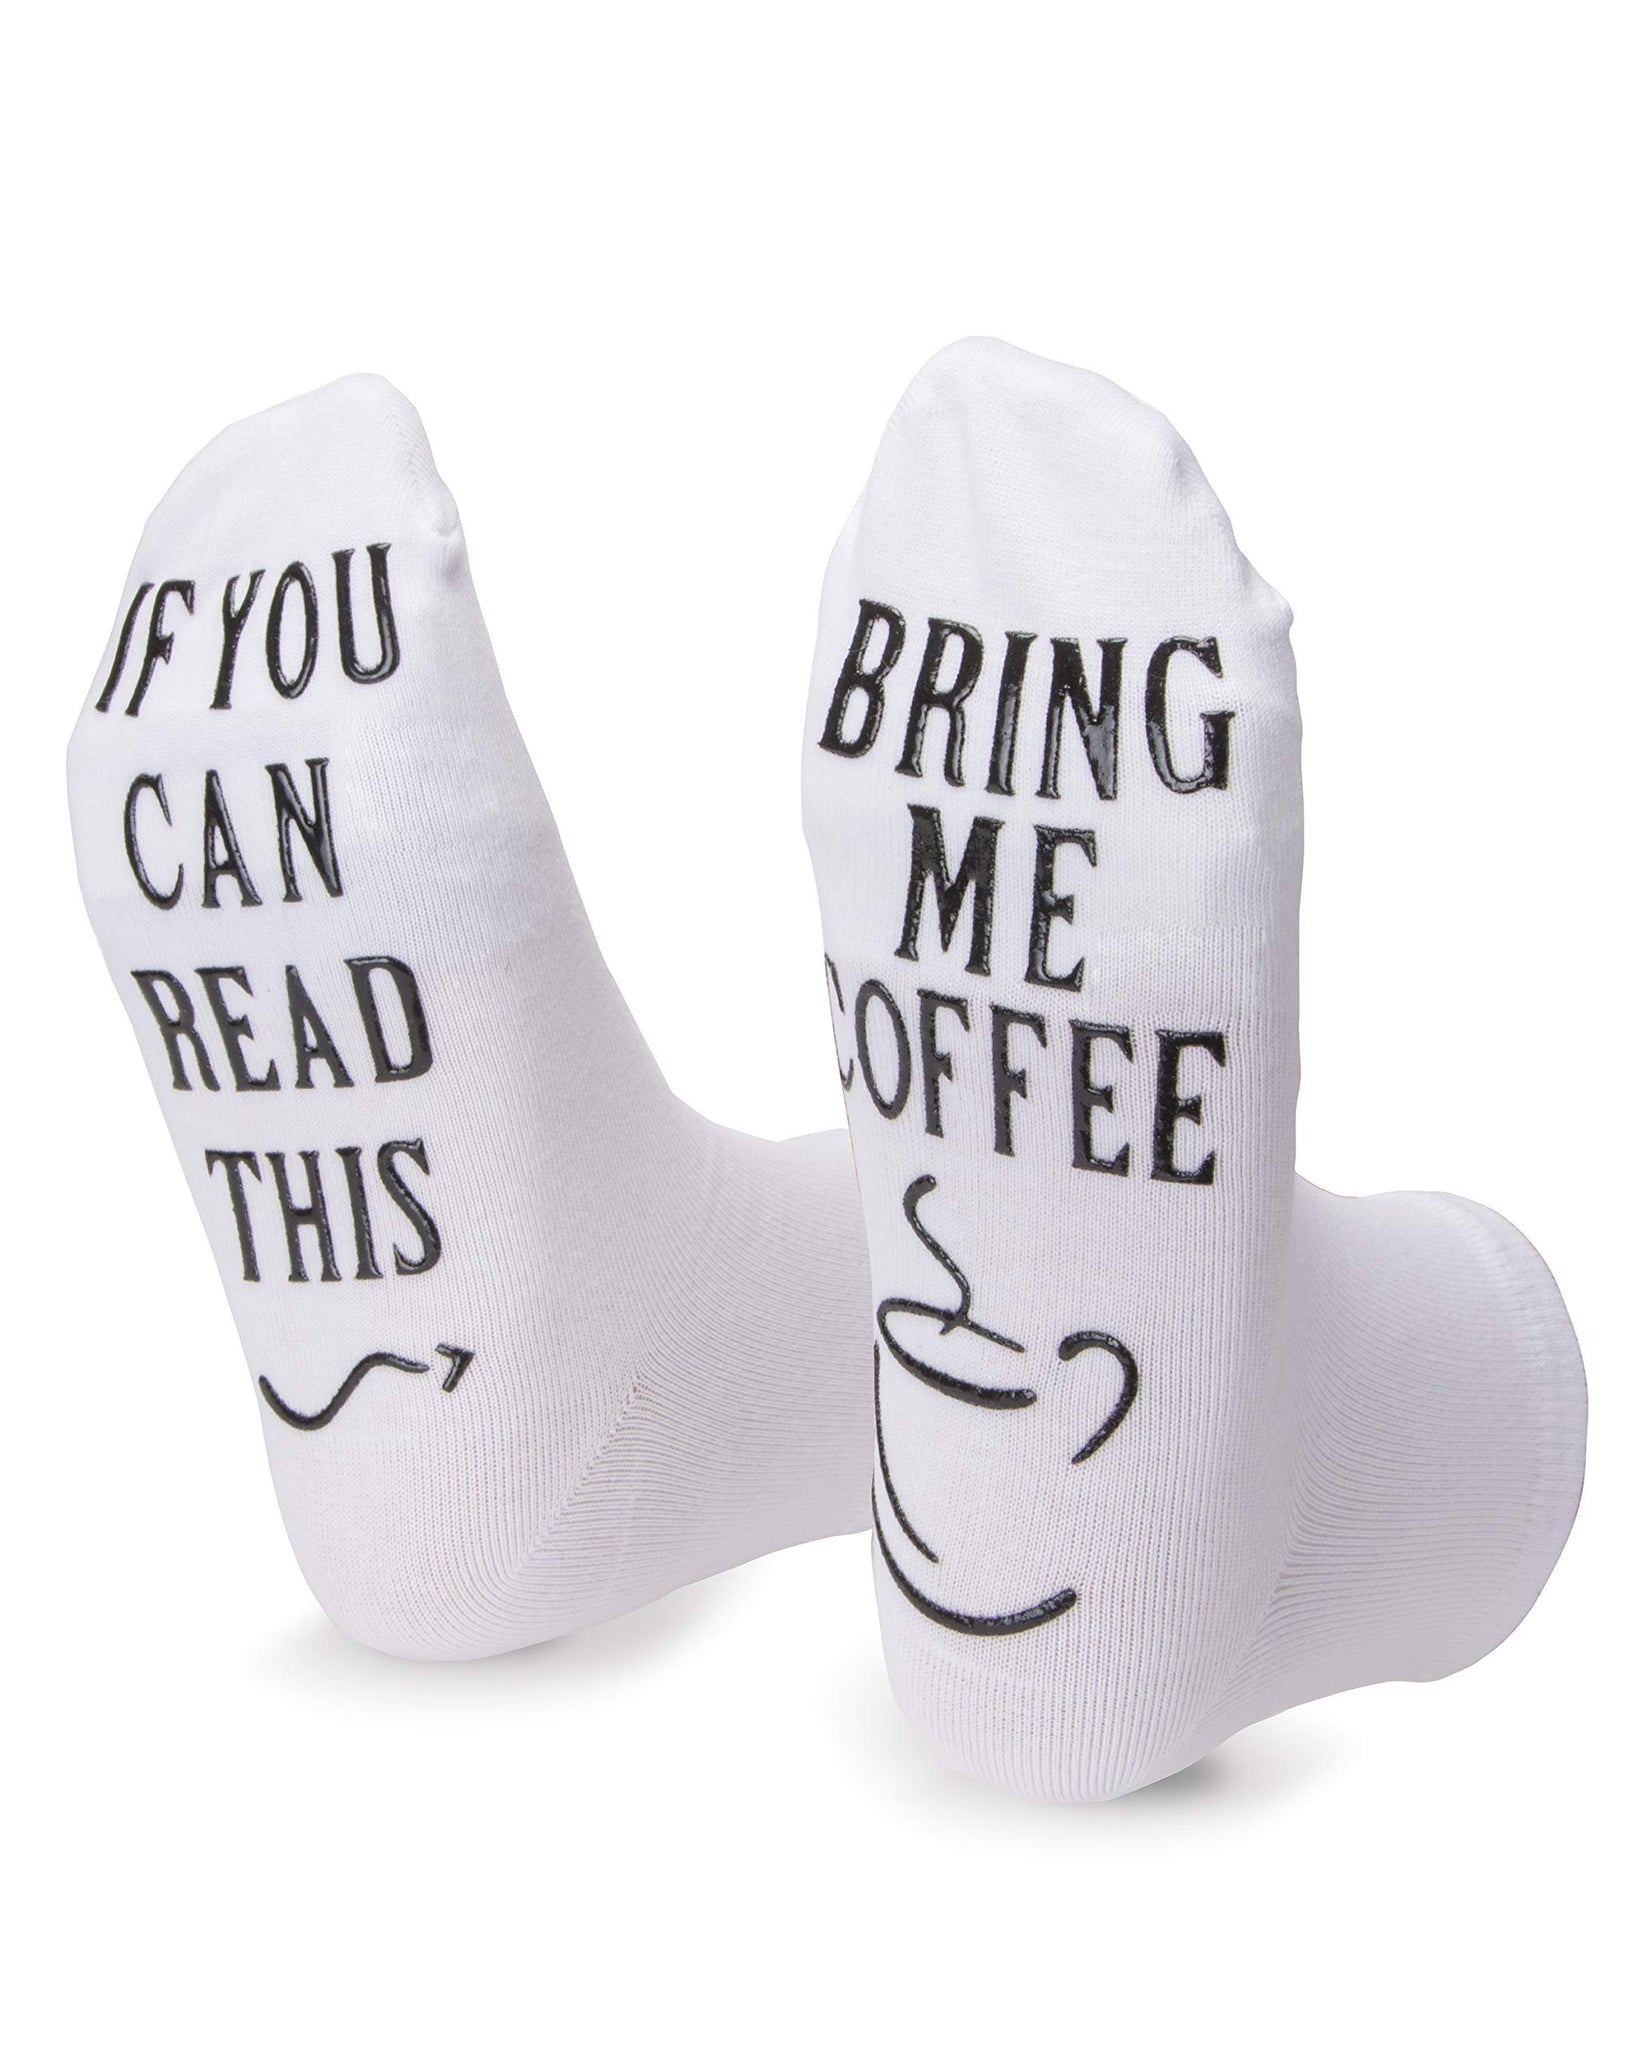 Bring me Coffee Socks Funny Birthday Gifts For Women Men Wife Her Him Husband Sister Best Friend Novelty Socks For Coffee Lovers - gift-siri